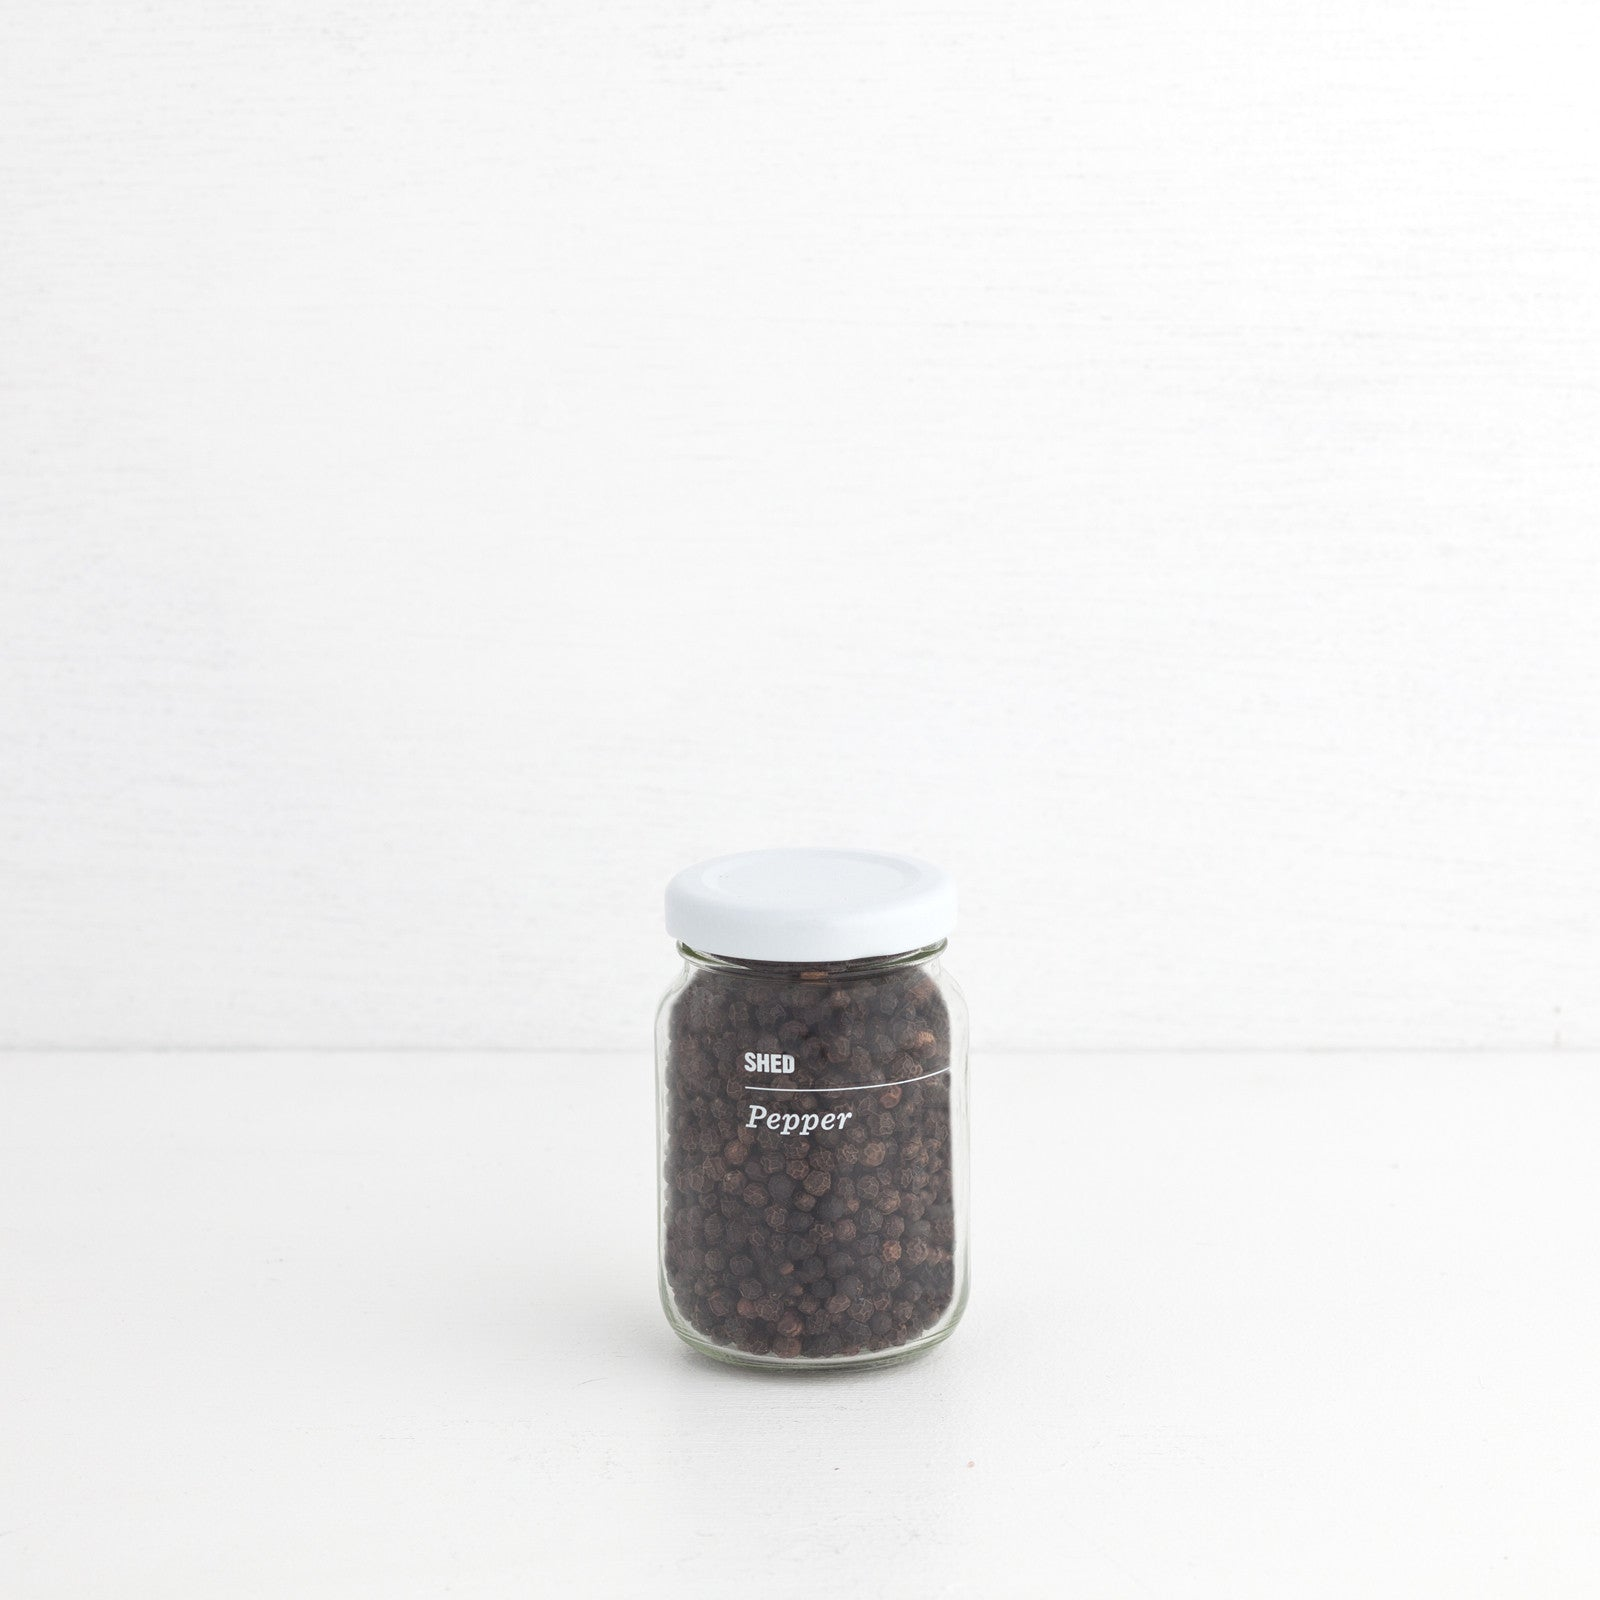 SHED Tellicherry Black Peppercorns